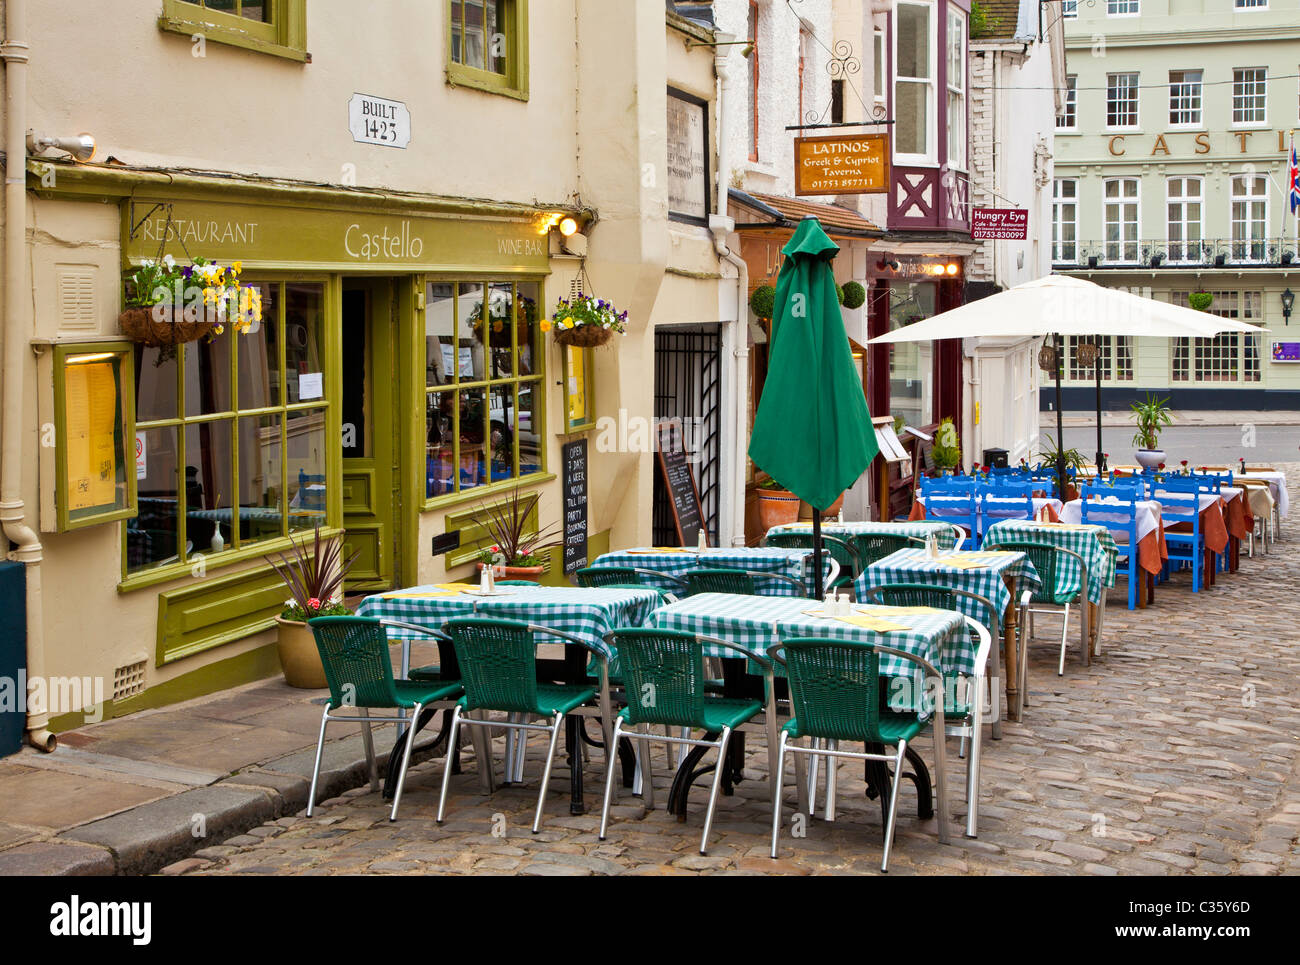 Tables and chairs outside a wine bar and restaurant in Church Lane, a small cobbled street in Windsor, Berkshire, England, UK Stock Photo